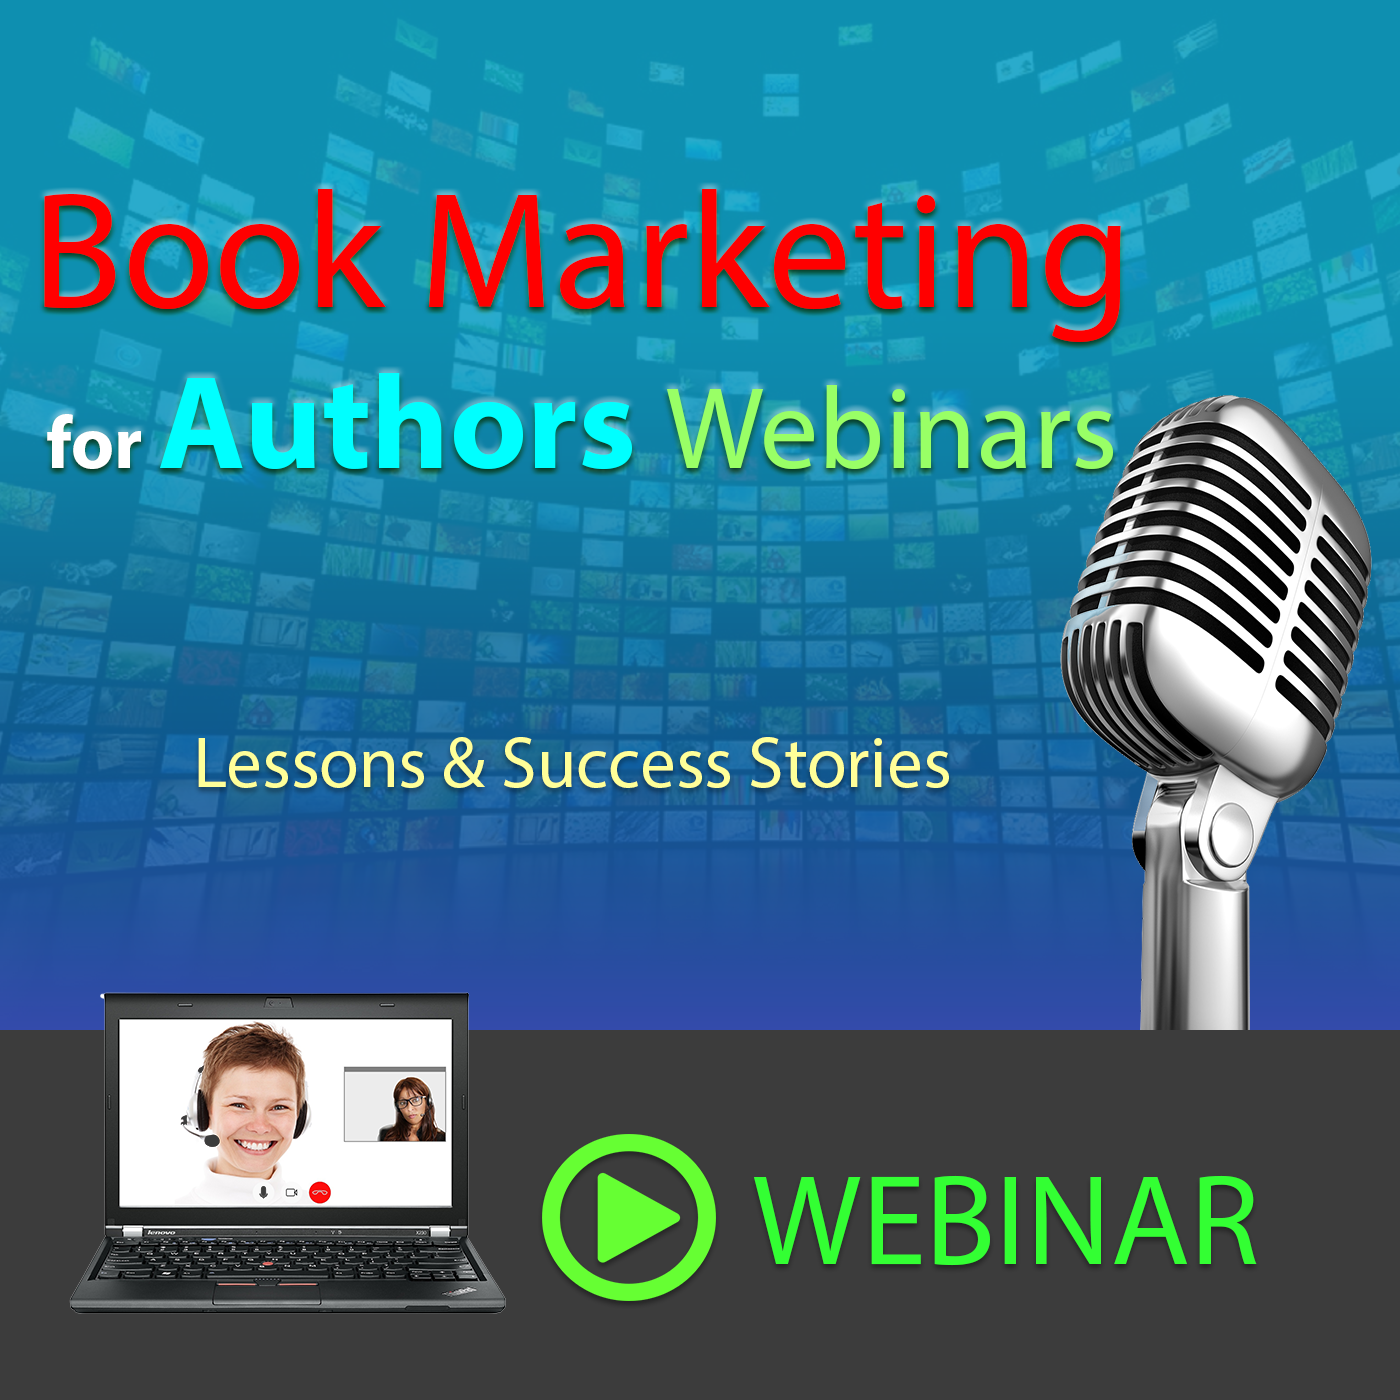 Book Marketing Webinars